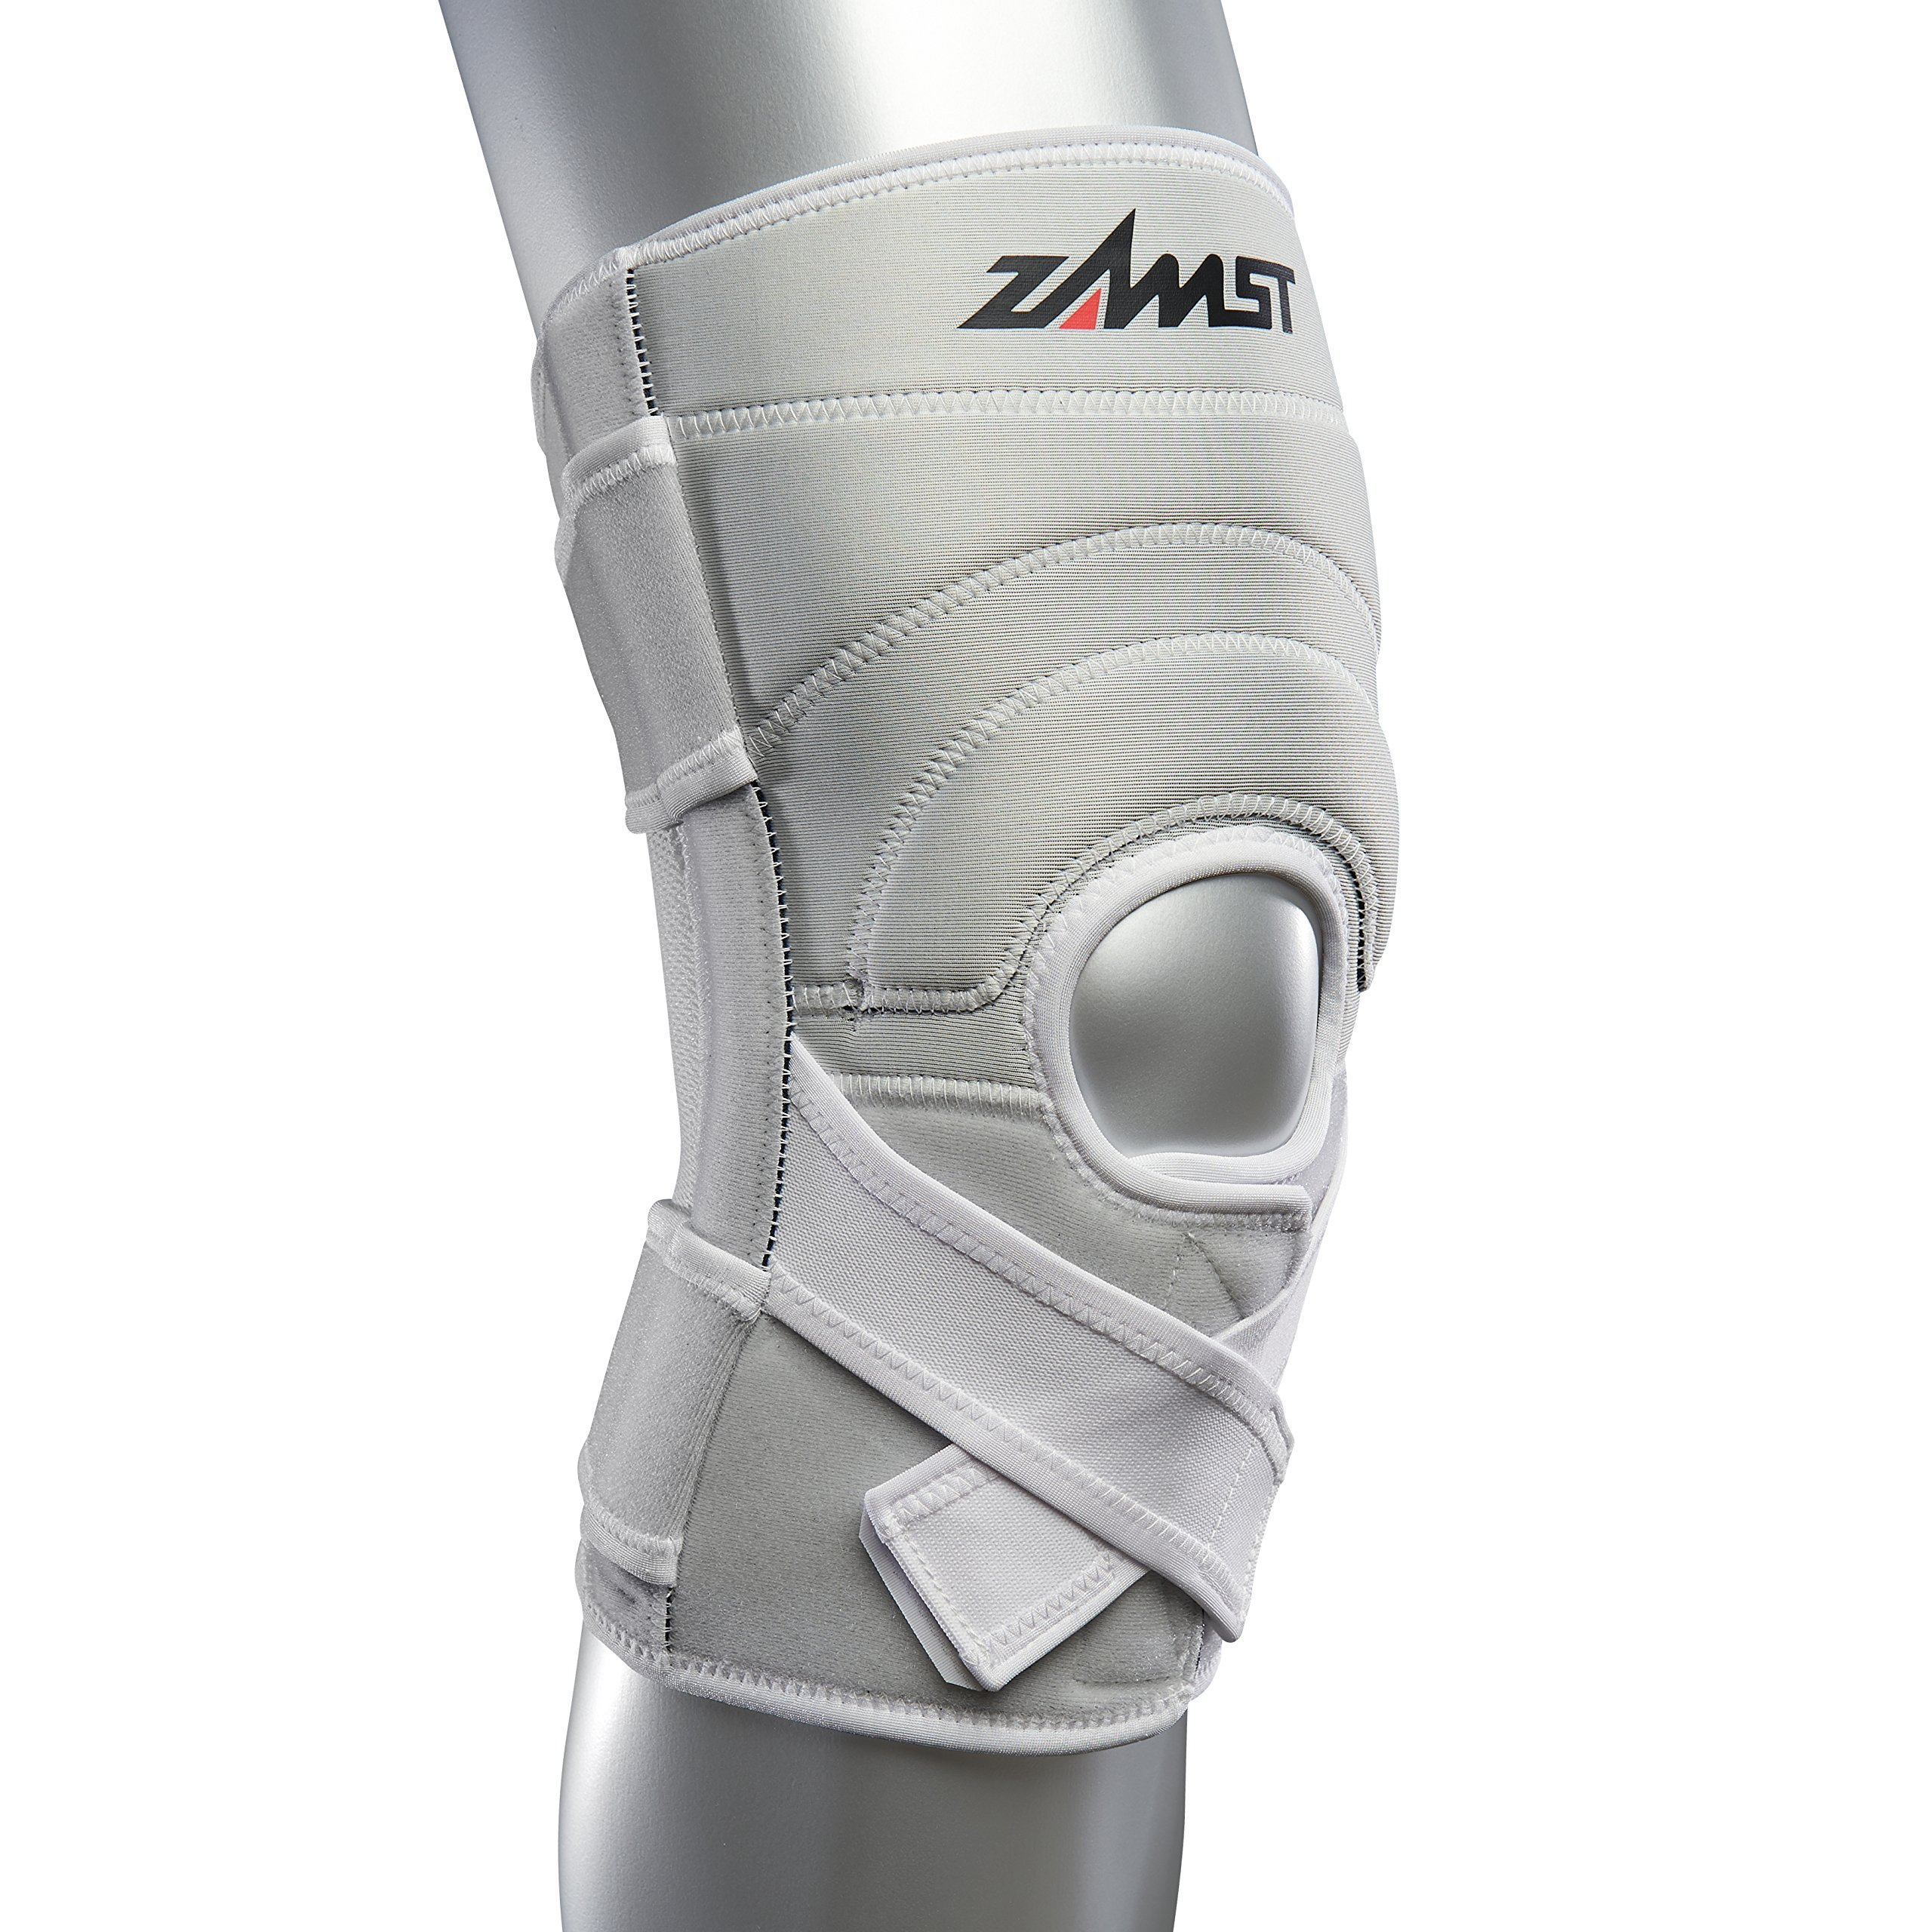 Zamst ZK-7 Knee Brace, White, X-Large by Zamst (Image #1)